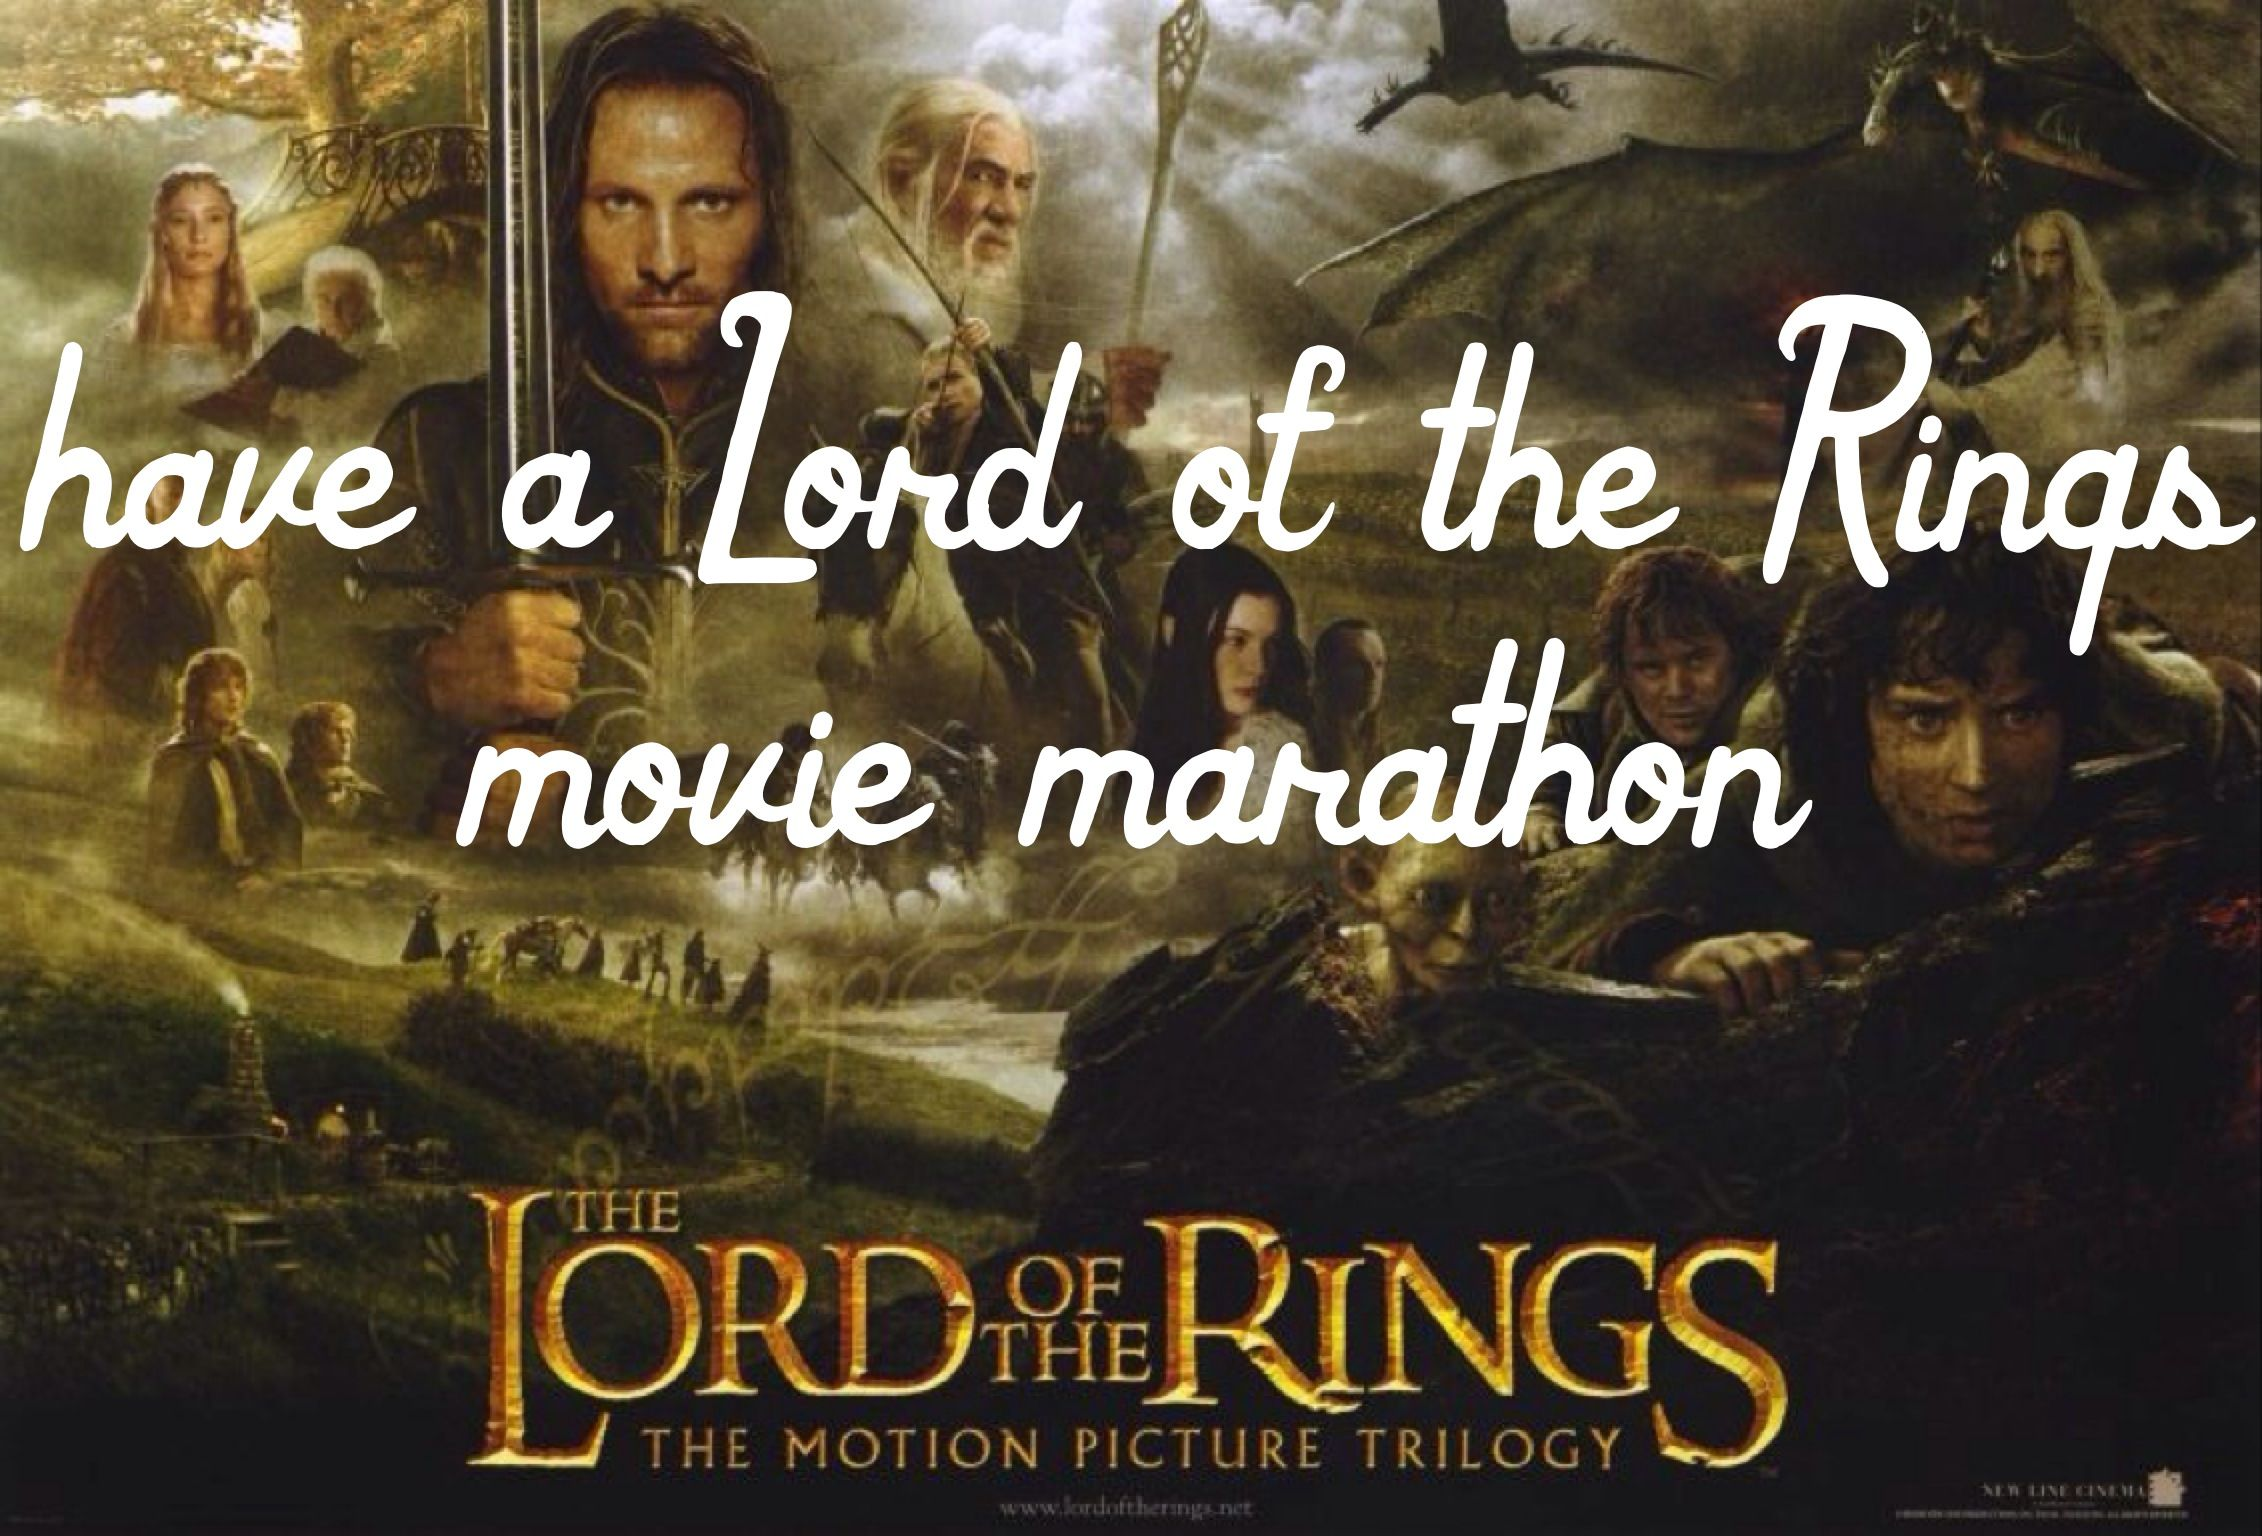 Have a lord of the rings movie marathon :D